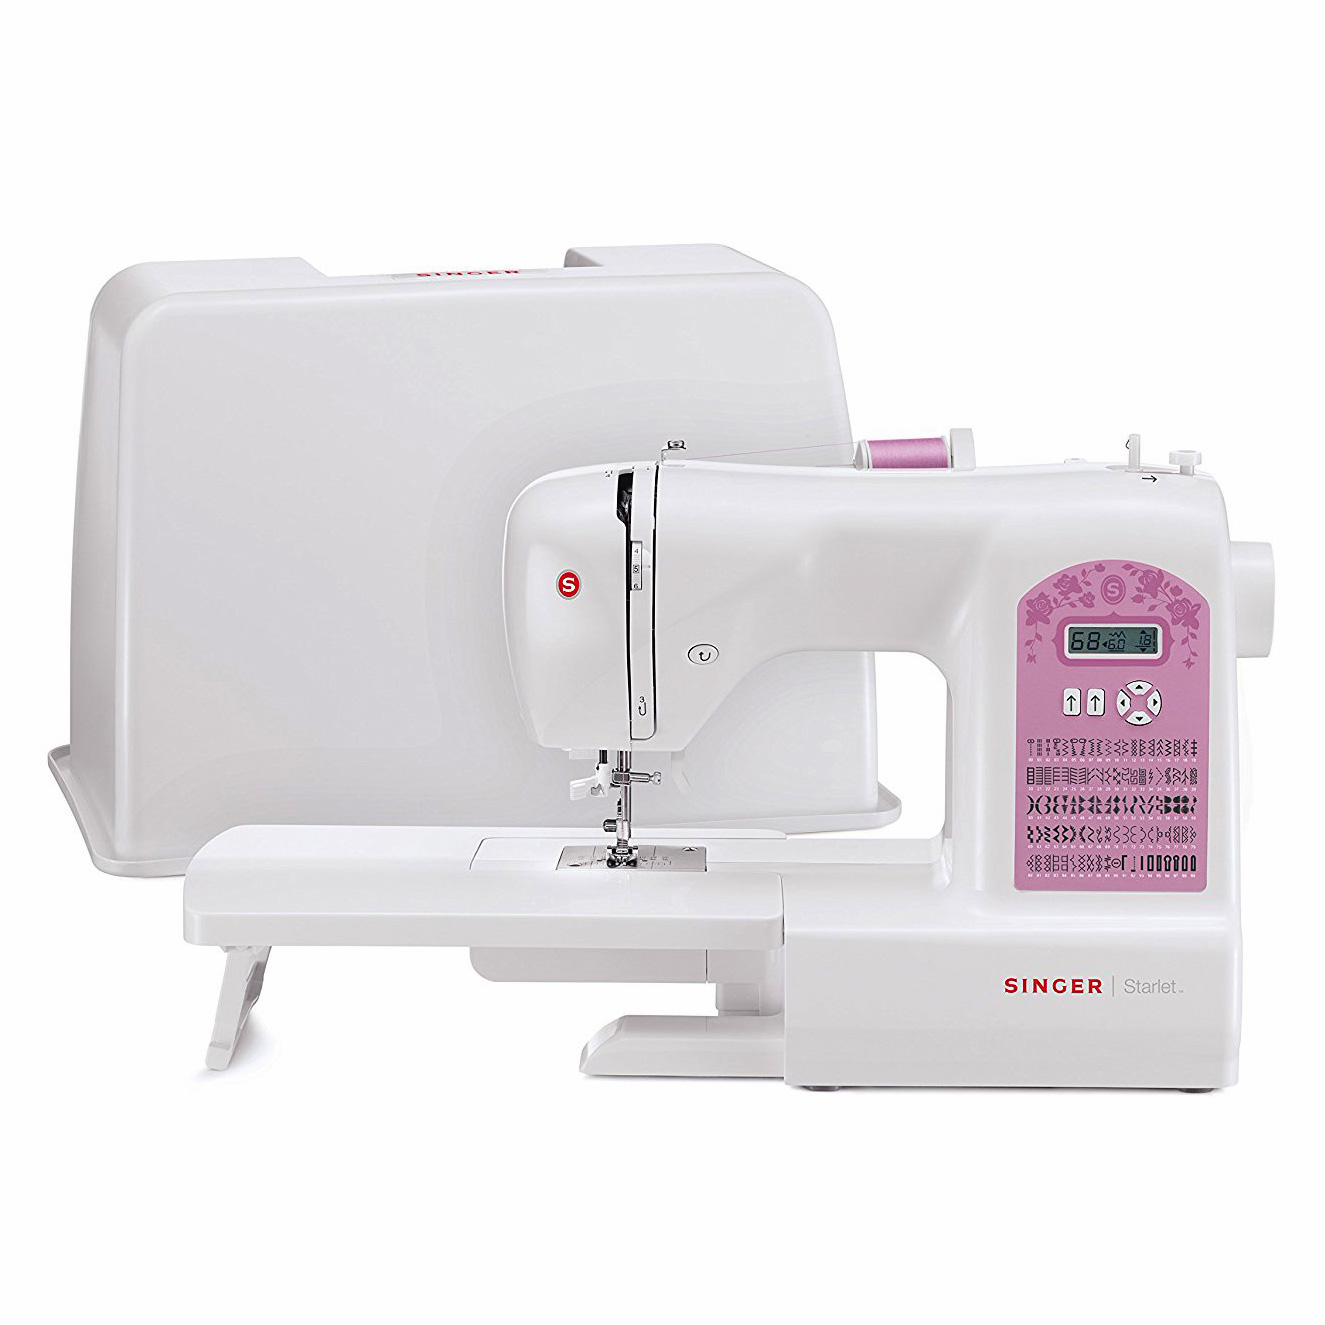 Singer Starlet Sewing Machine (6699)